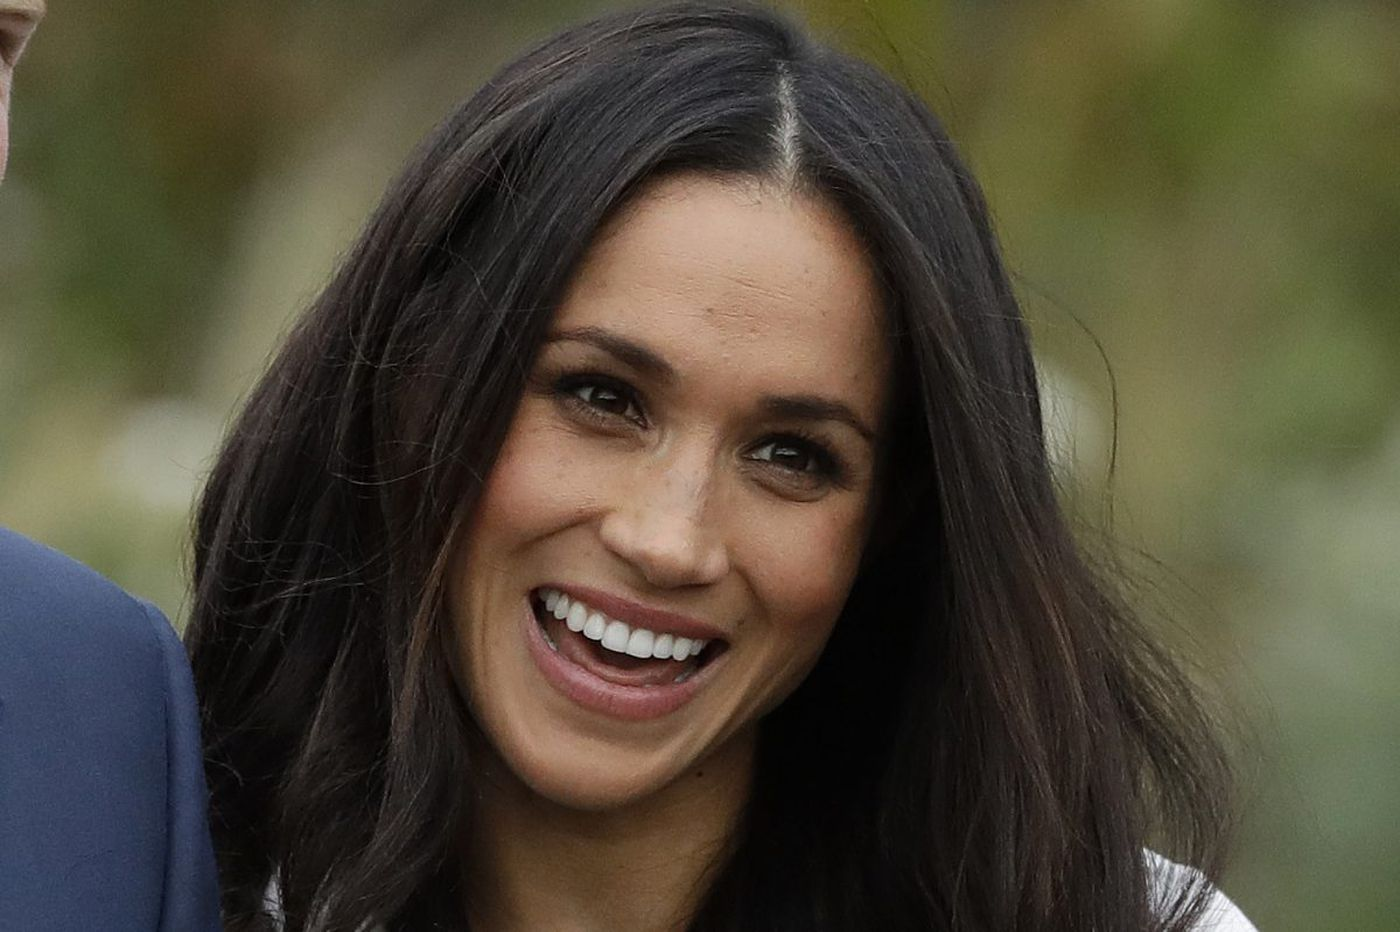 Is Meghan Markle's mixed-race heritage a first for British royalty?